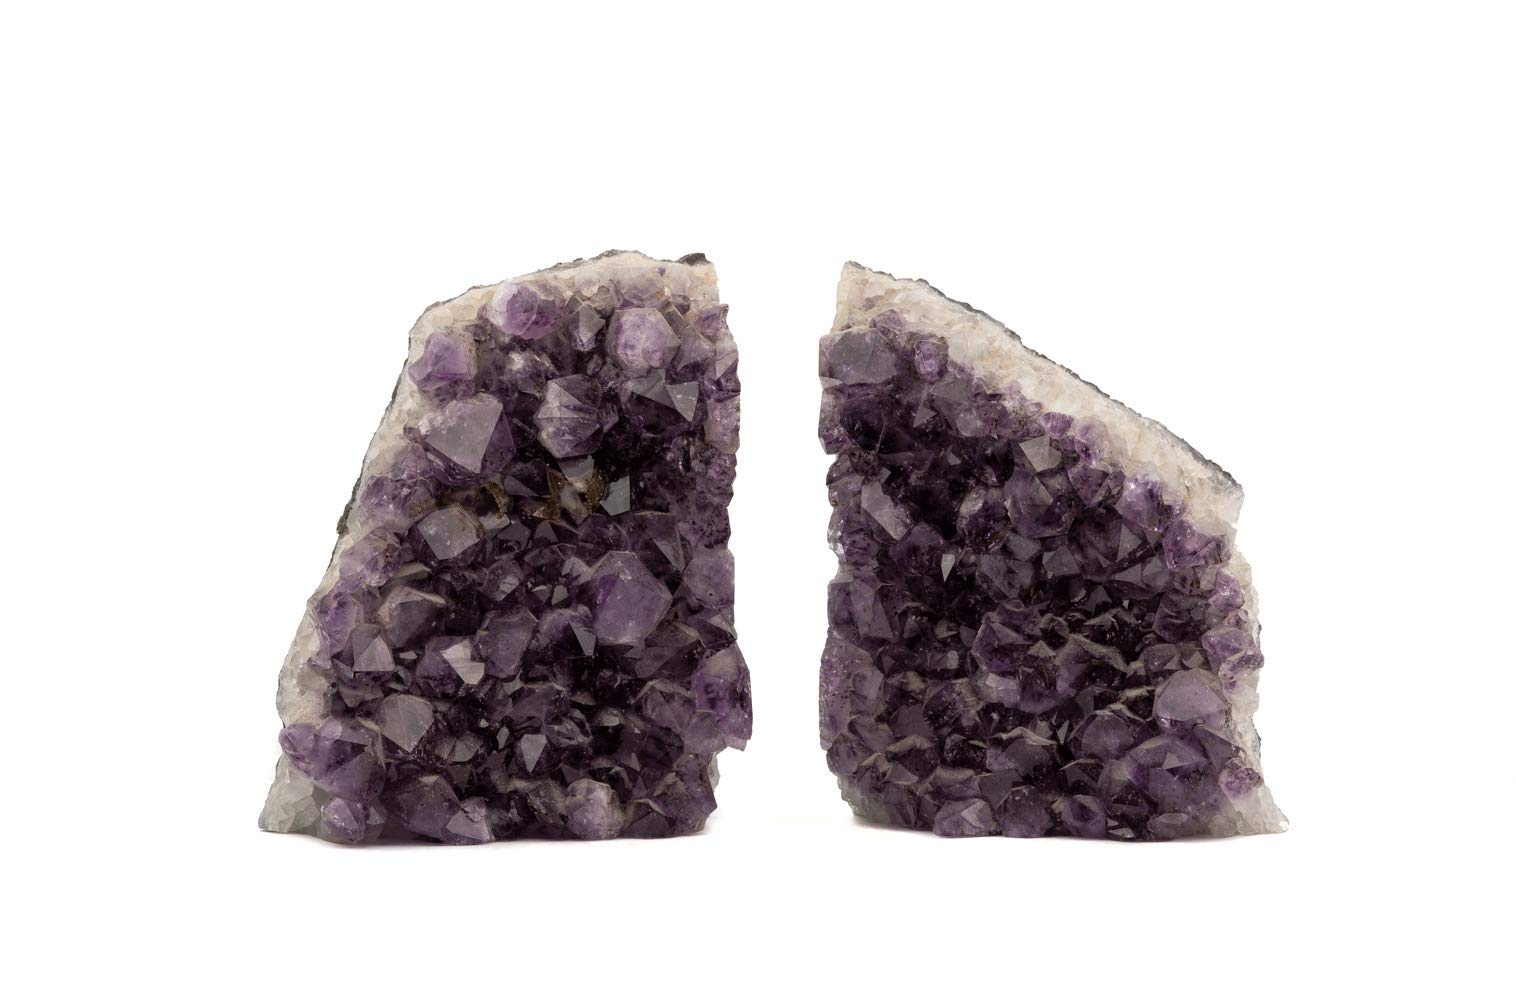 JIC Gem Amethyst Geode Bookends Agate Book Ends Natural Stone Decoration Gift Collection 6-8 LB Pair